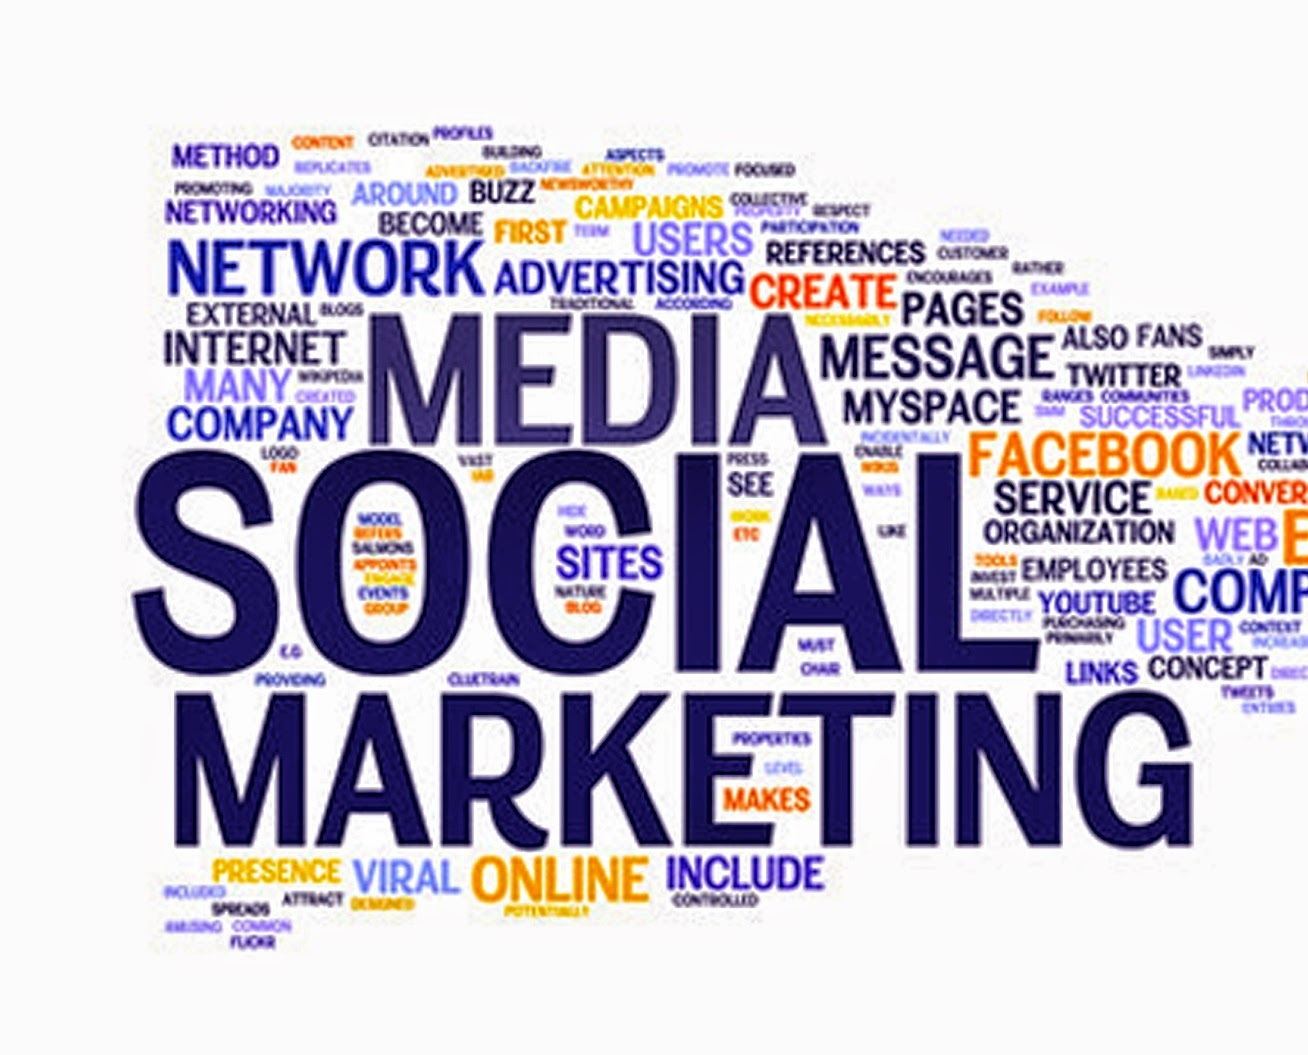 12 Tools to Help You Optimize Your Social Media Marketing Results